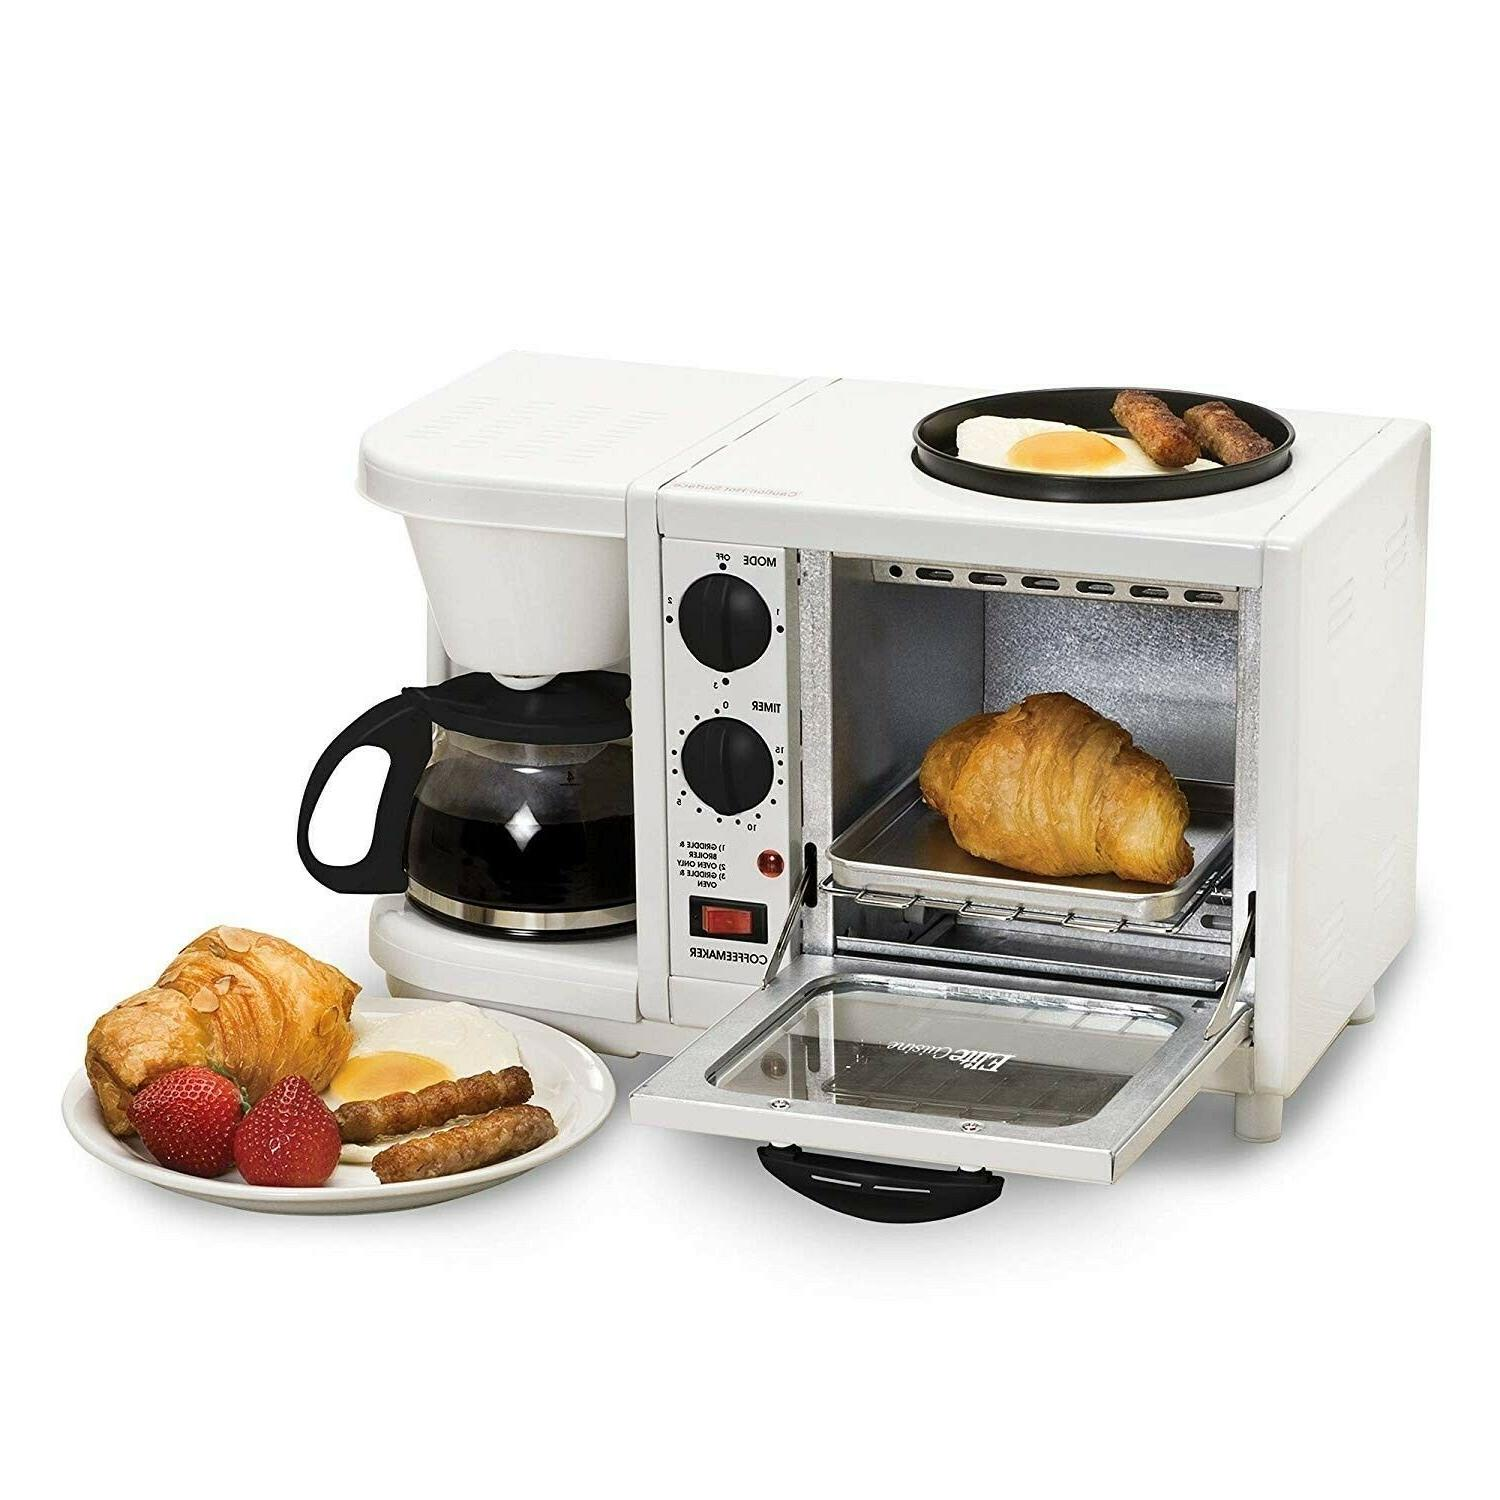 commercial toaster oven electric griddle coffee maker